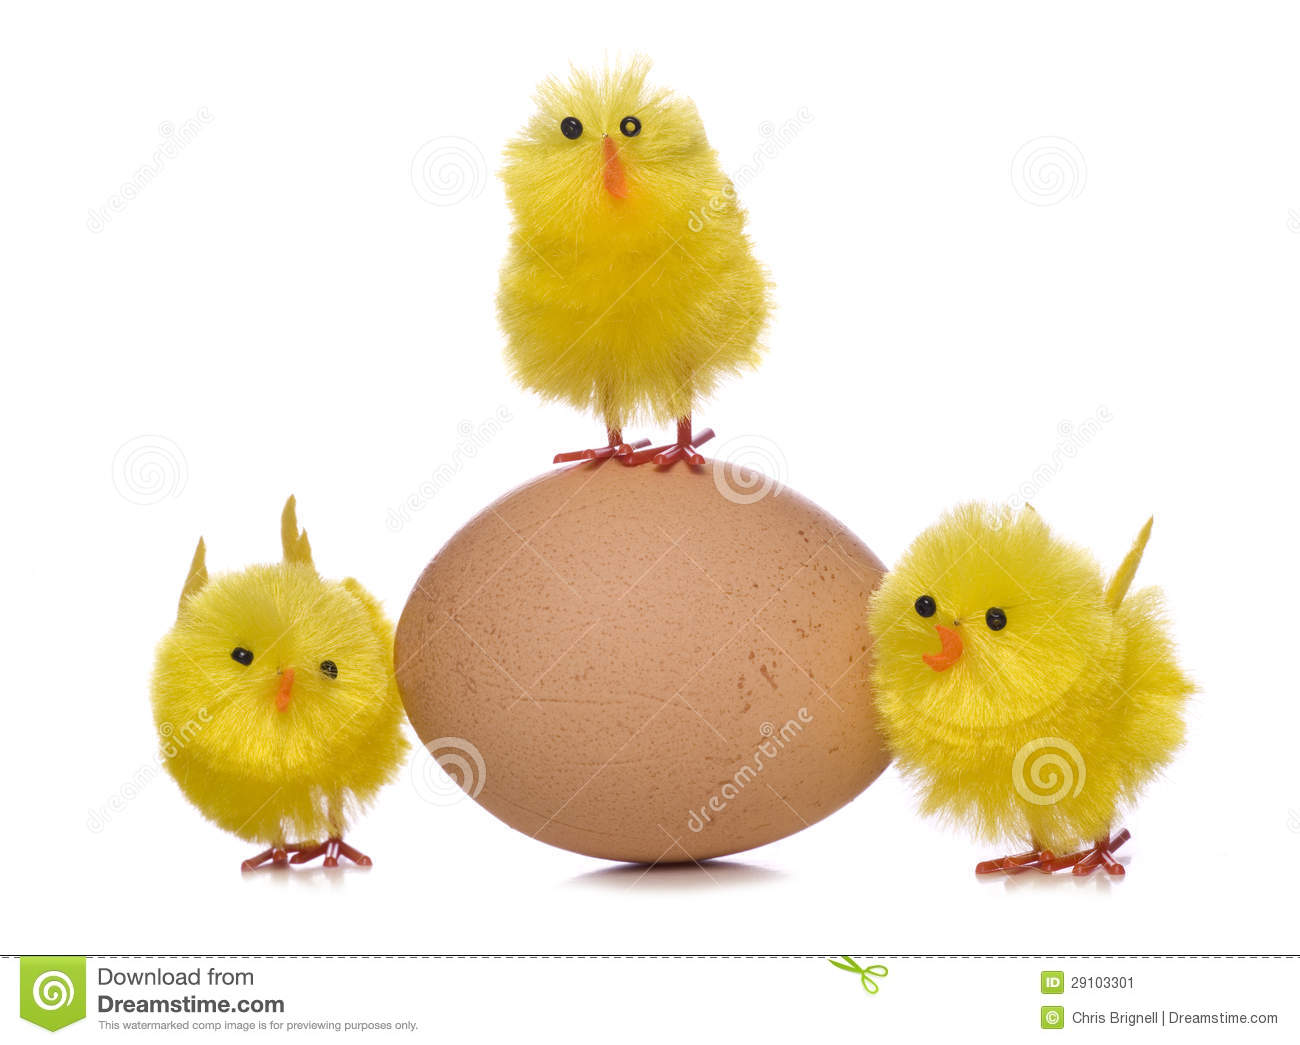 how to grow a chick from an egg